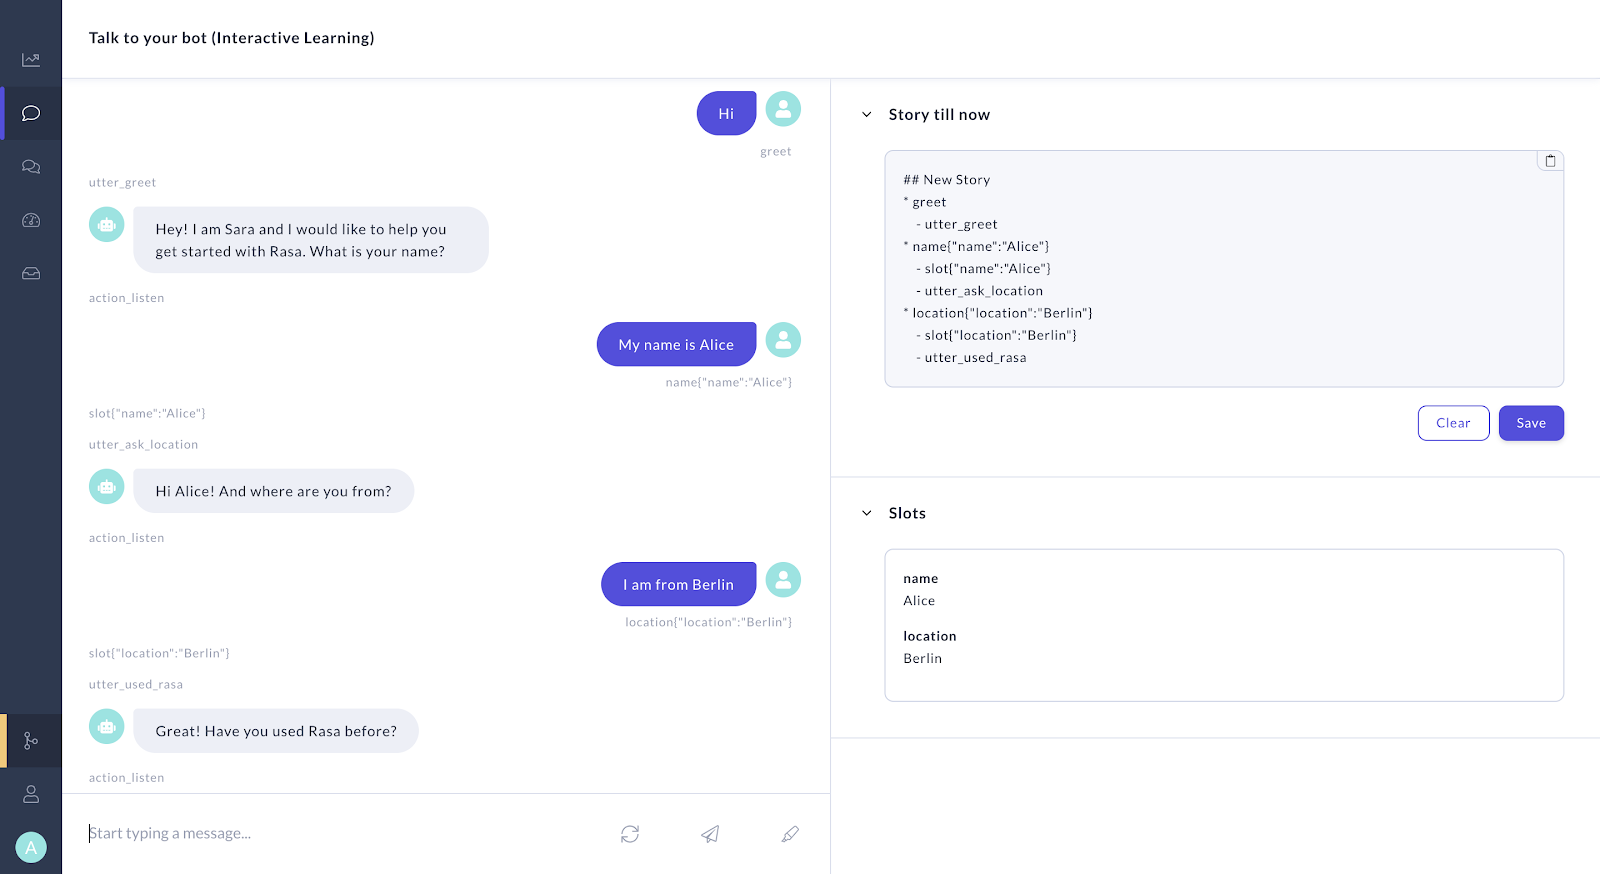 Rasa's tools allow the bot to learn from real conversations, and improve performance